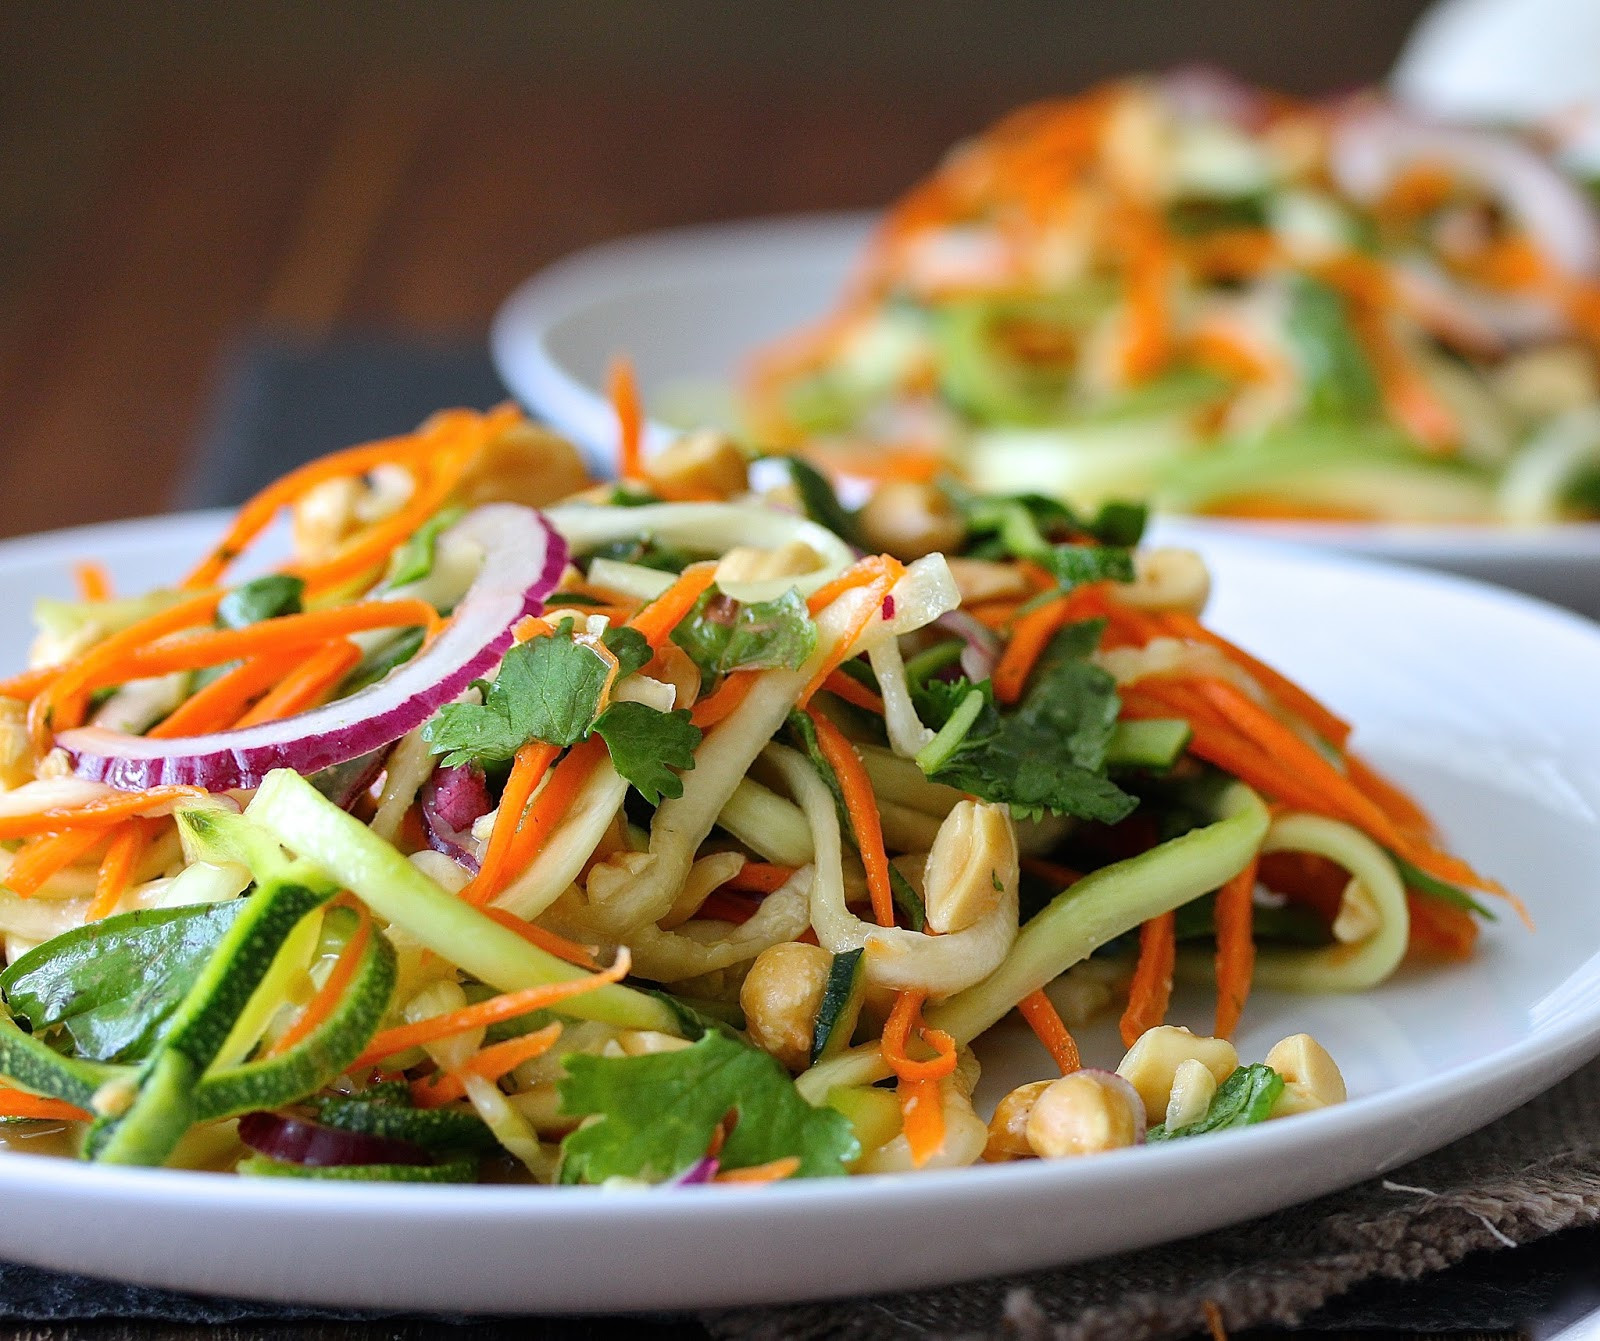 Carrot Salad Recipe  Vietnamese Zucchini and Carrot Salad with Peanuts